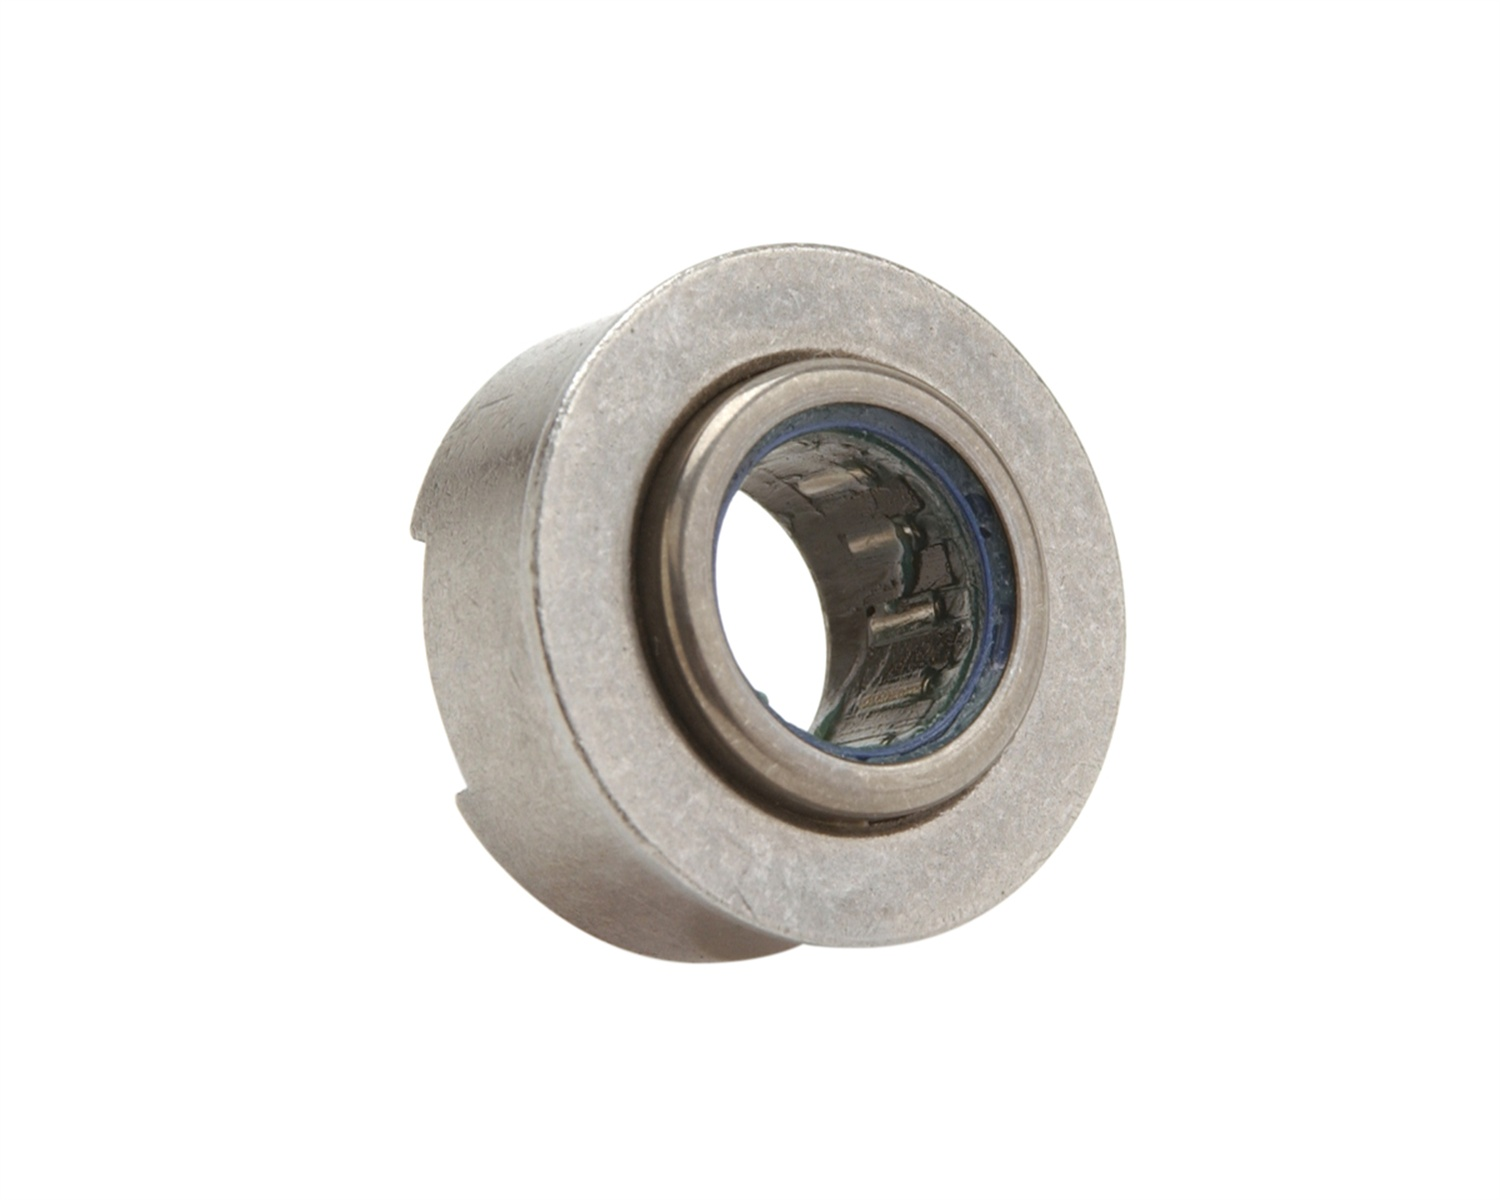 M-7600-A Ford Performance Clutch Pilot Bearing Roller Bearing